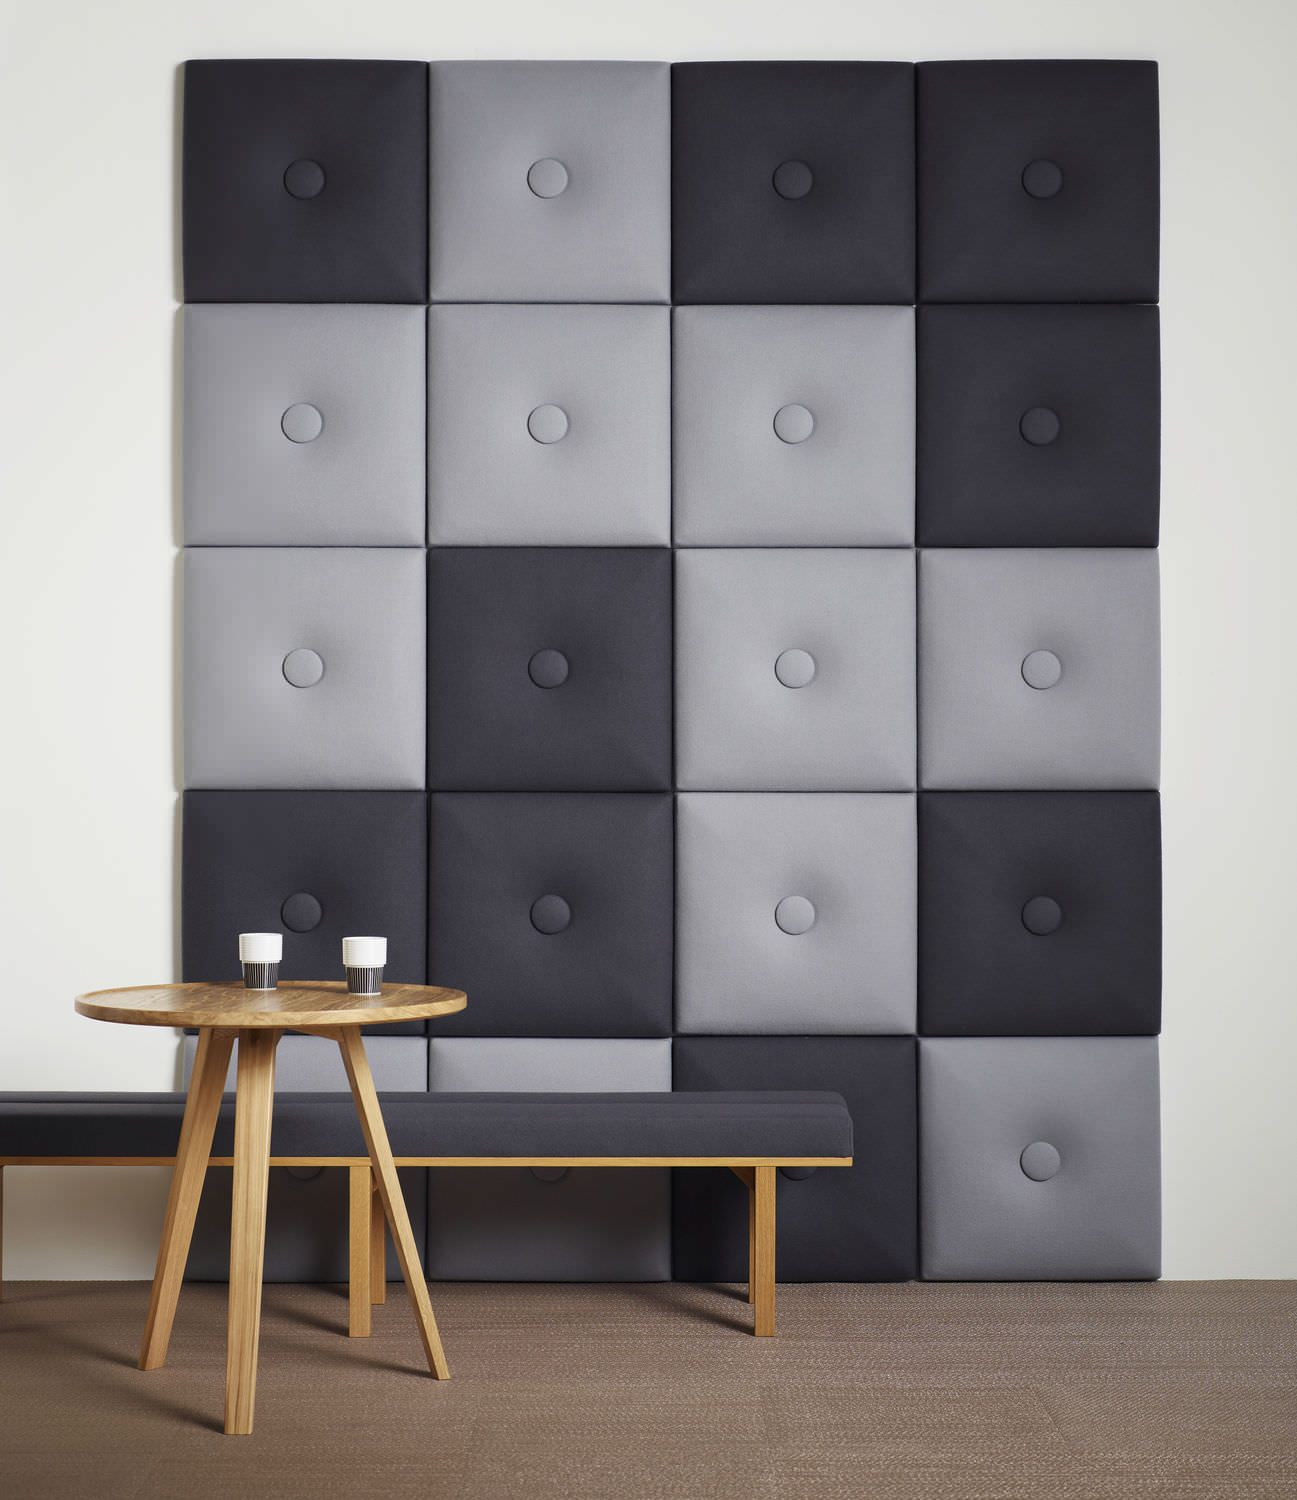 upholstered wall panels with tufted buttons with cool gray textile acoustic panel design home. Black Bedroom Furniture Sets. Home Design Ideas